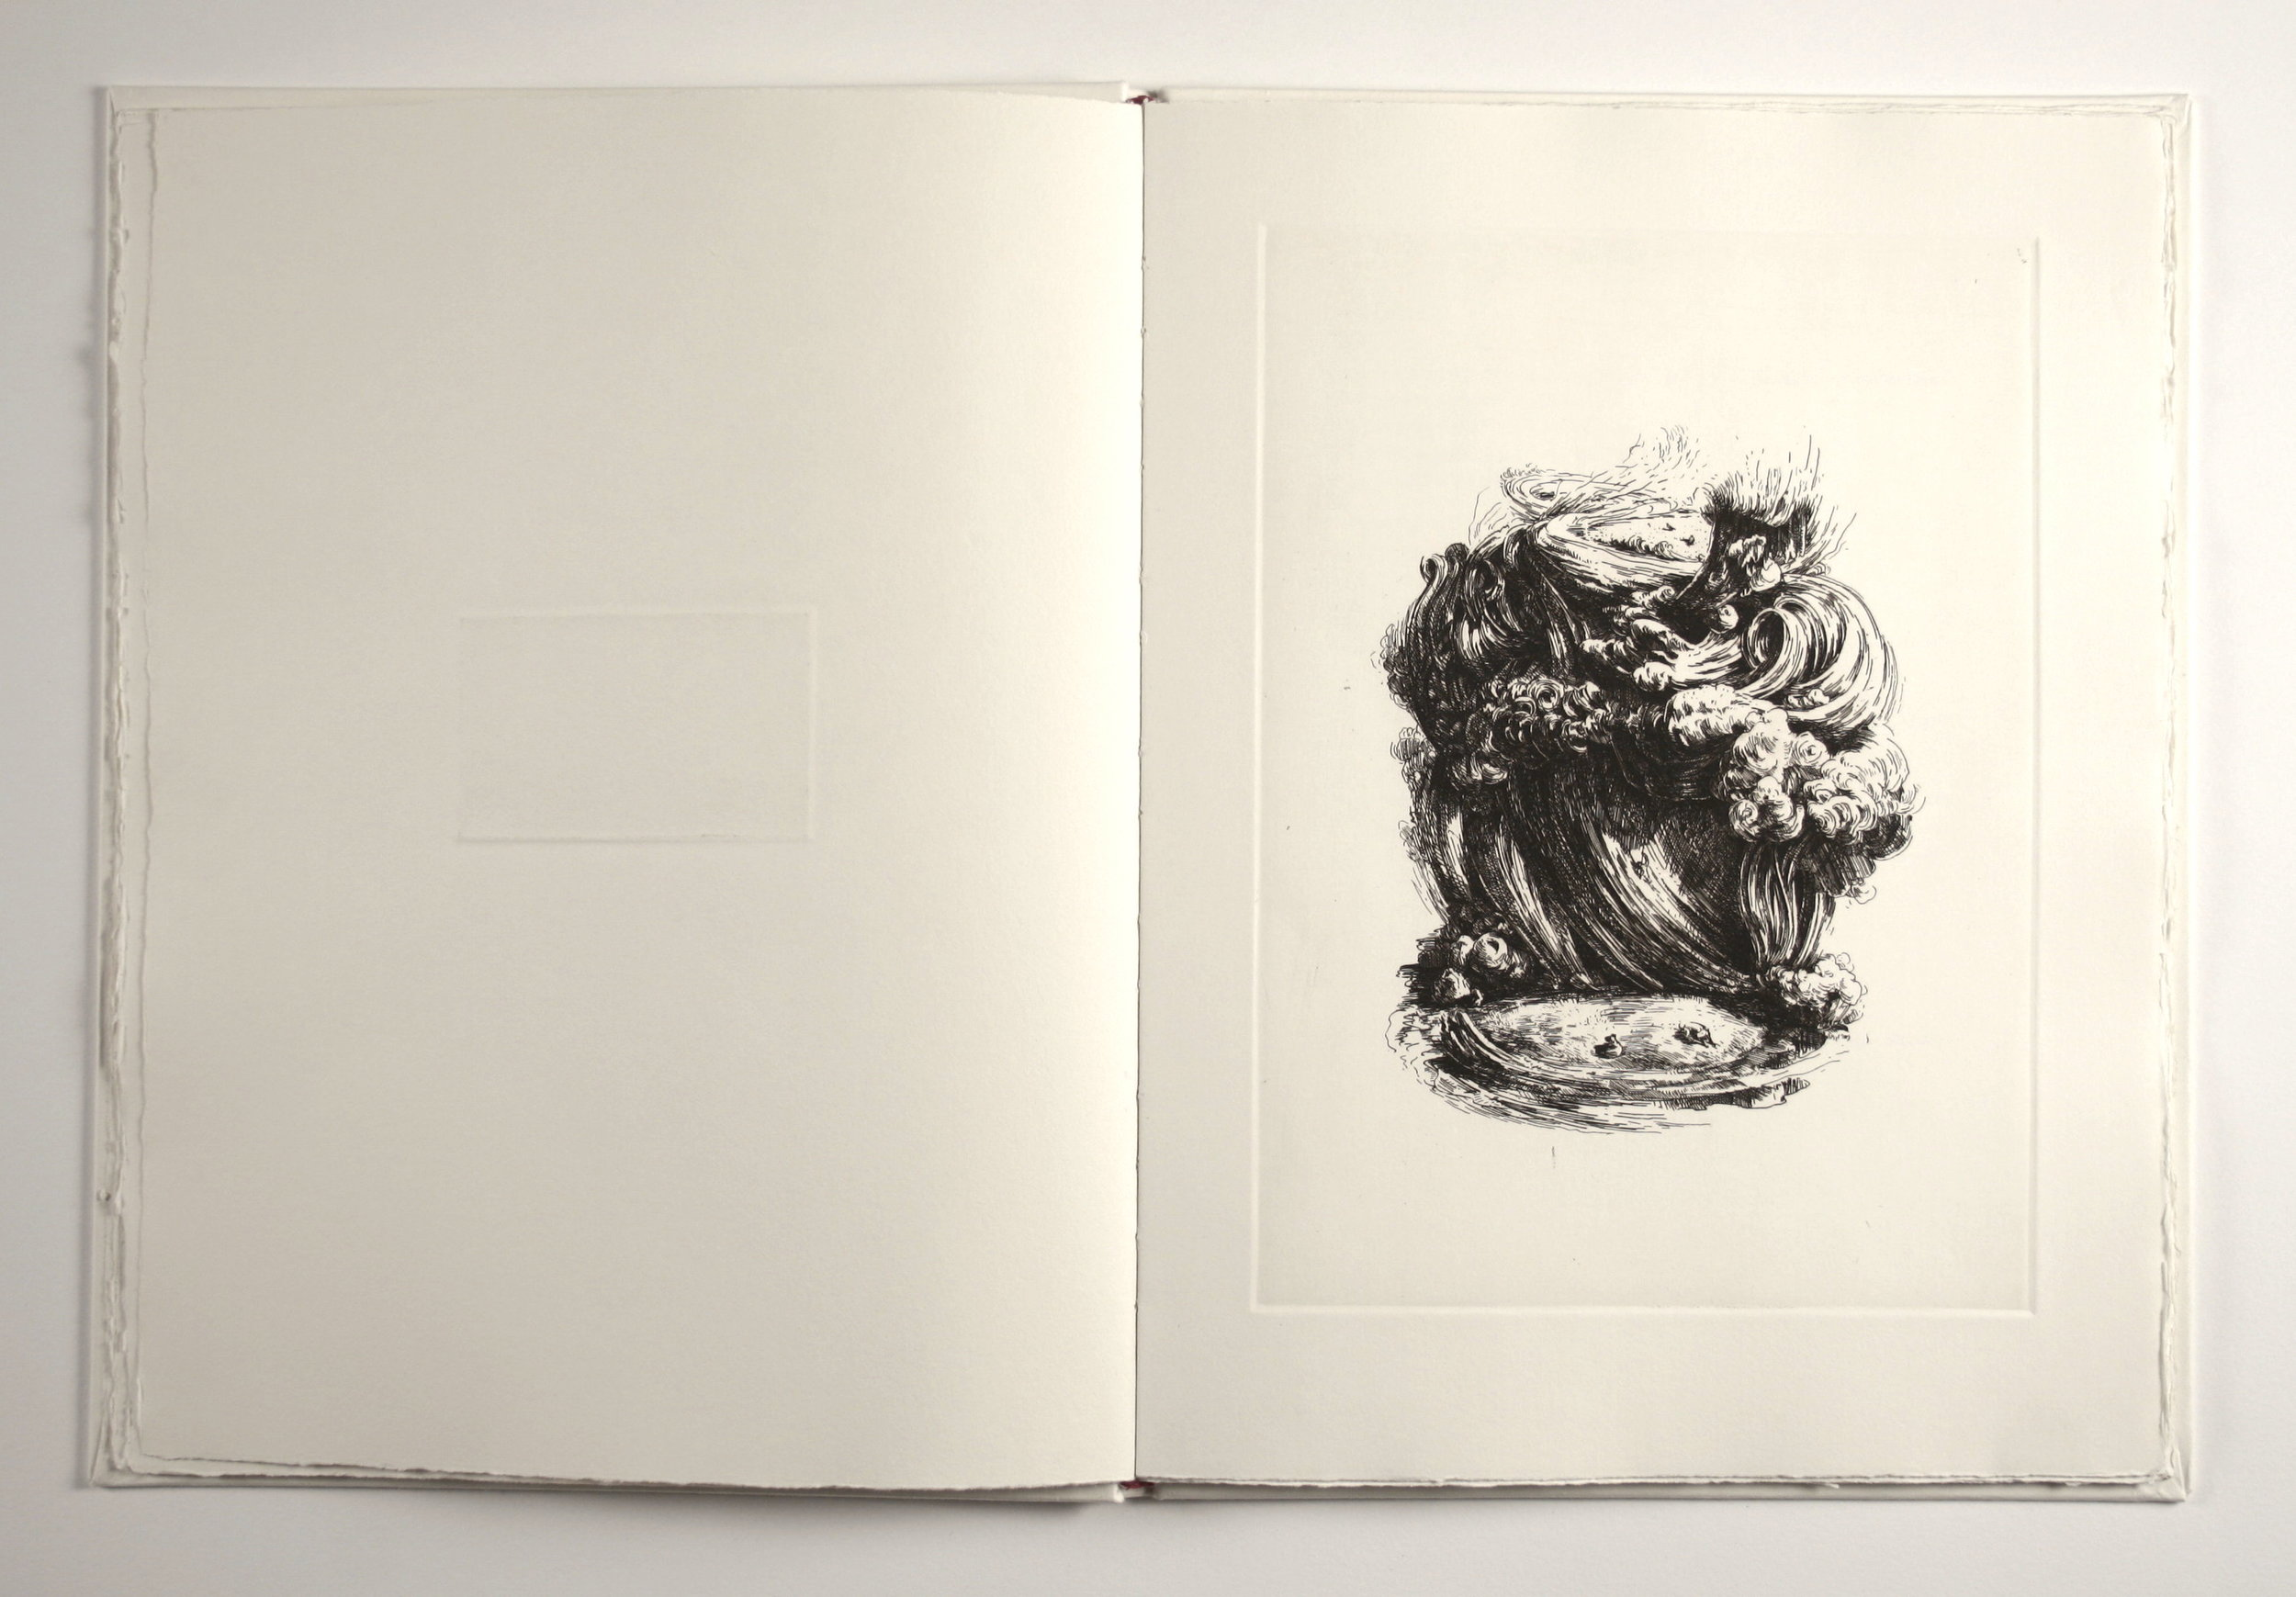 BOOK OF STORIES Eleven etchings of TINUS VERMEERSCH One unpublished narration of RODERIK SIX , 2013 Artist Book 16 x 11 x 1/2 inches (40.6 x 27.9 x 1.3 cm) Wood case: 17 1/8 x 11 3/4 x 1 1/2 inches (43.5 x 29.8 x 3.8 cm) Edition : 43/50 Edizioni Canopo Edition of 50. Numbered from 1/50 to 50/50, 5 copies of which are ad personam. Plus one artist proof.